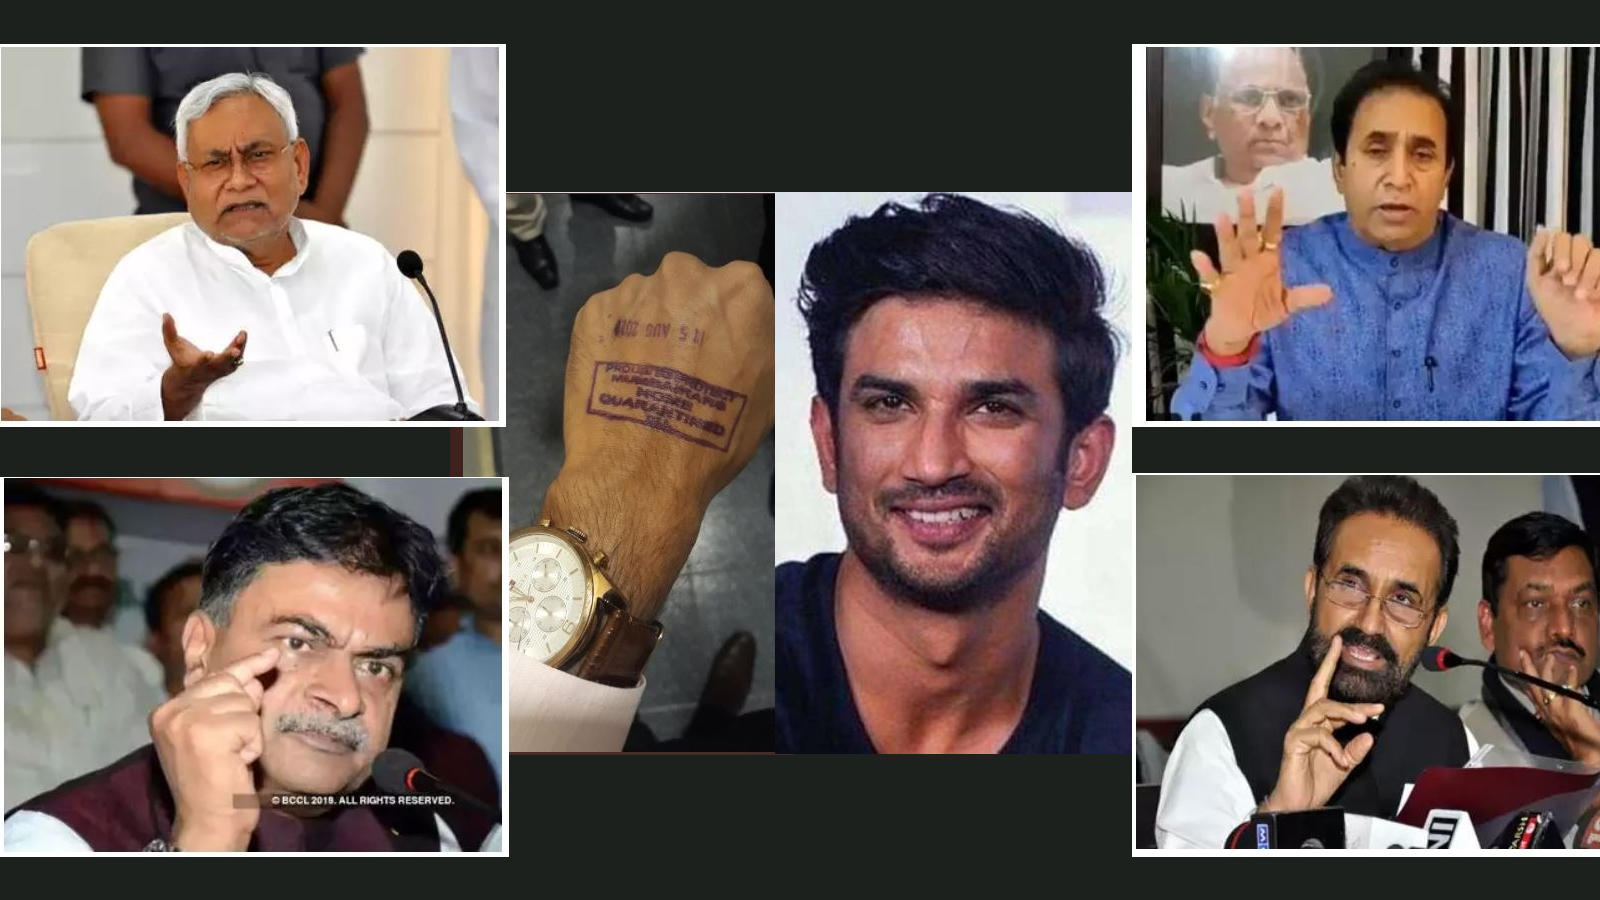 sushant-singh-rajput-death-case-netas-join-in-mumbai-vs-bihar-cops-turf-war-after-patna-sp-probing-late-actors-death-gets-forcibly-quarantined-on-arrival-in-mumbai